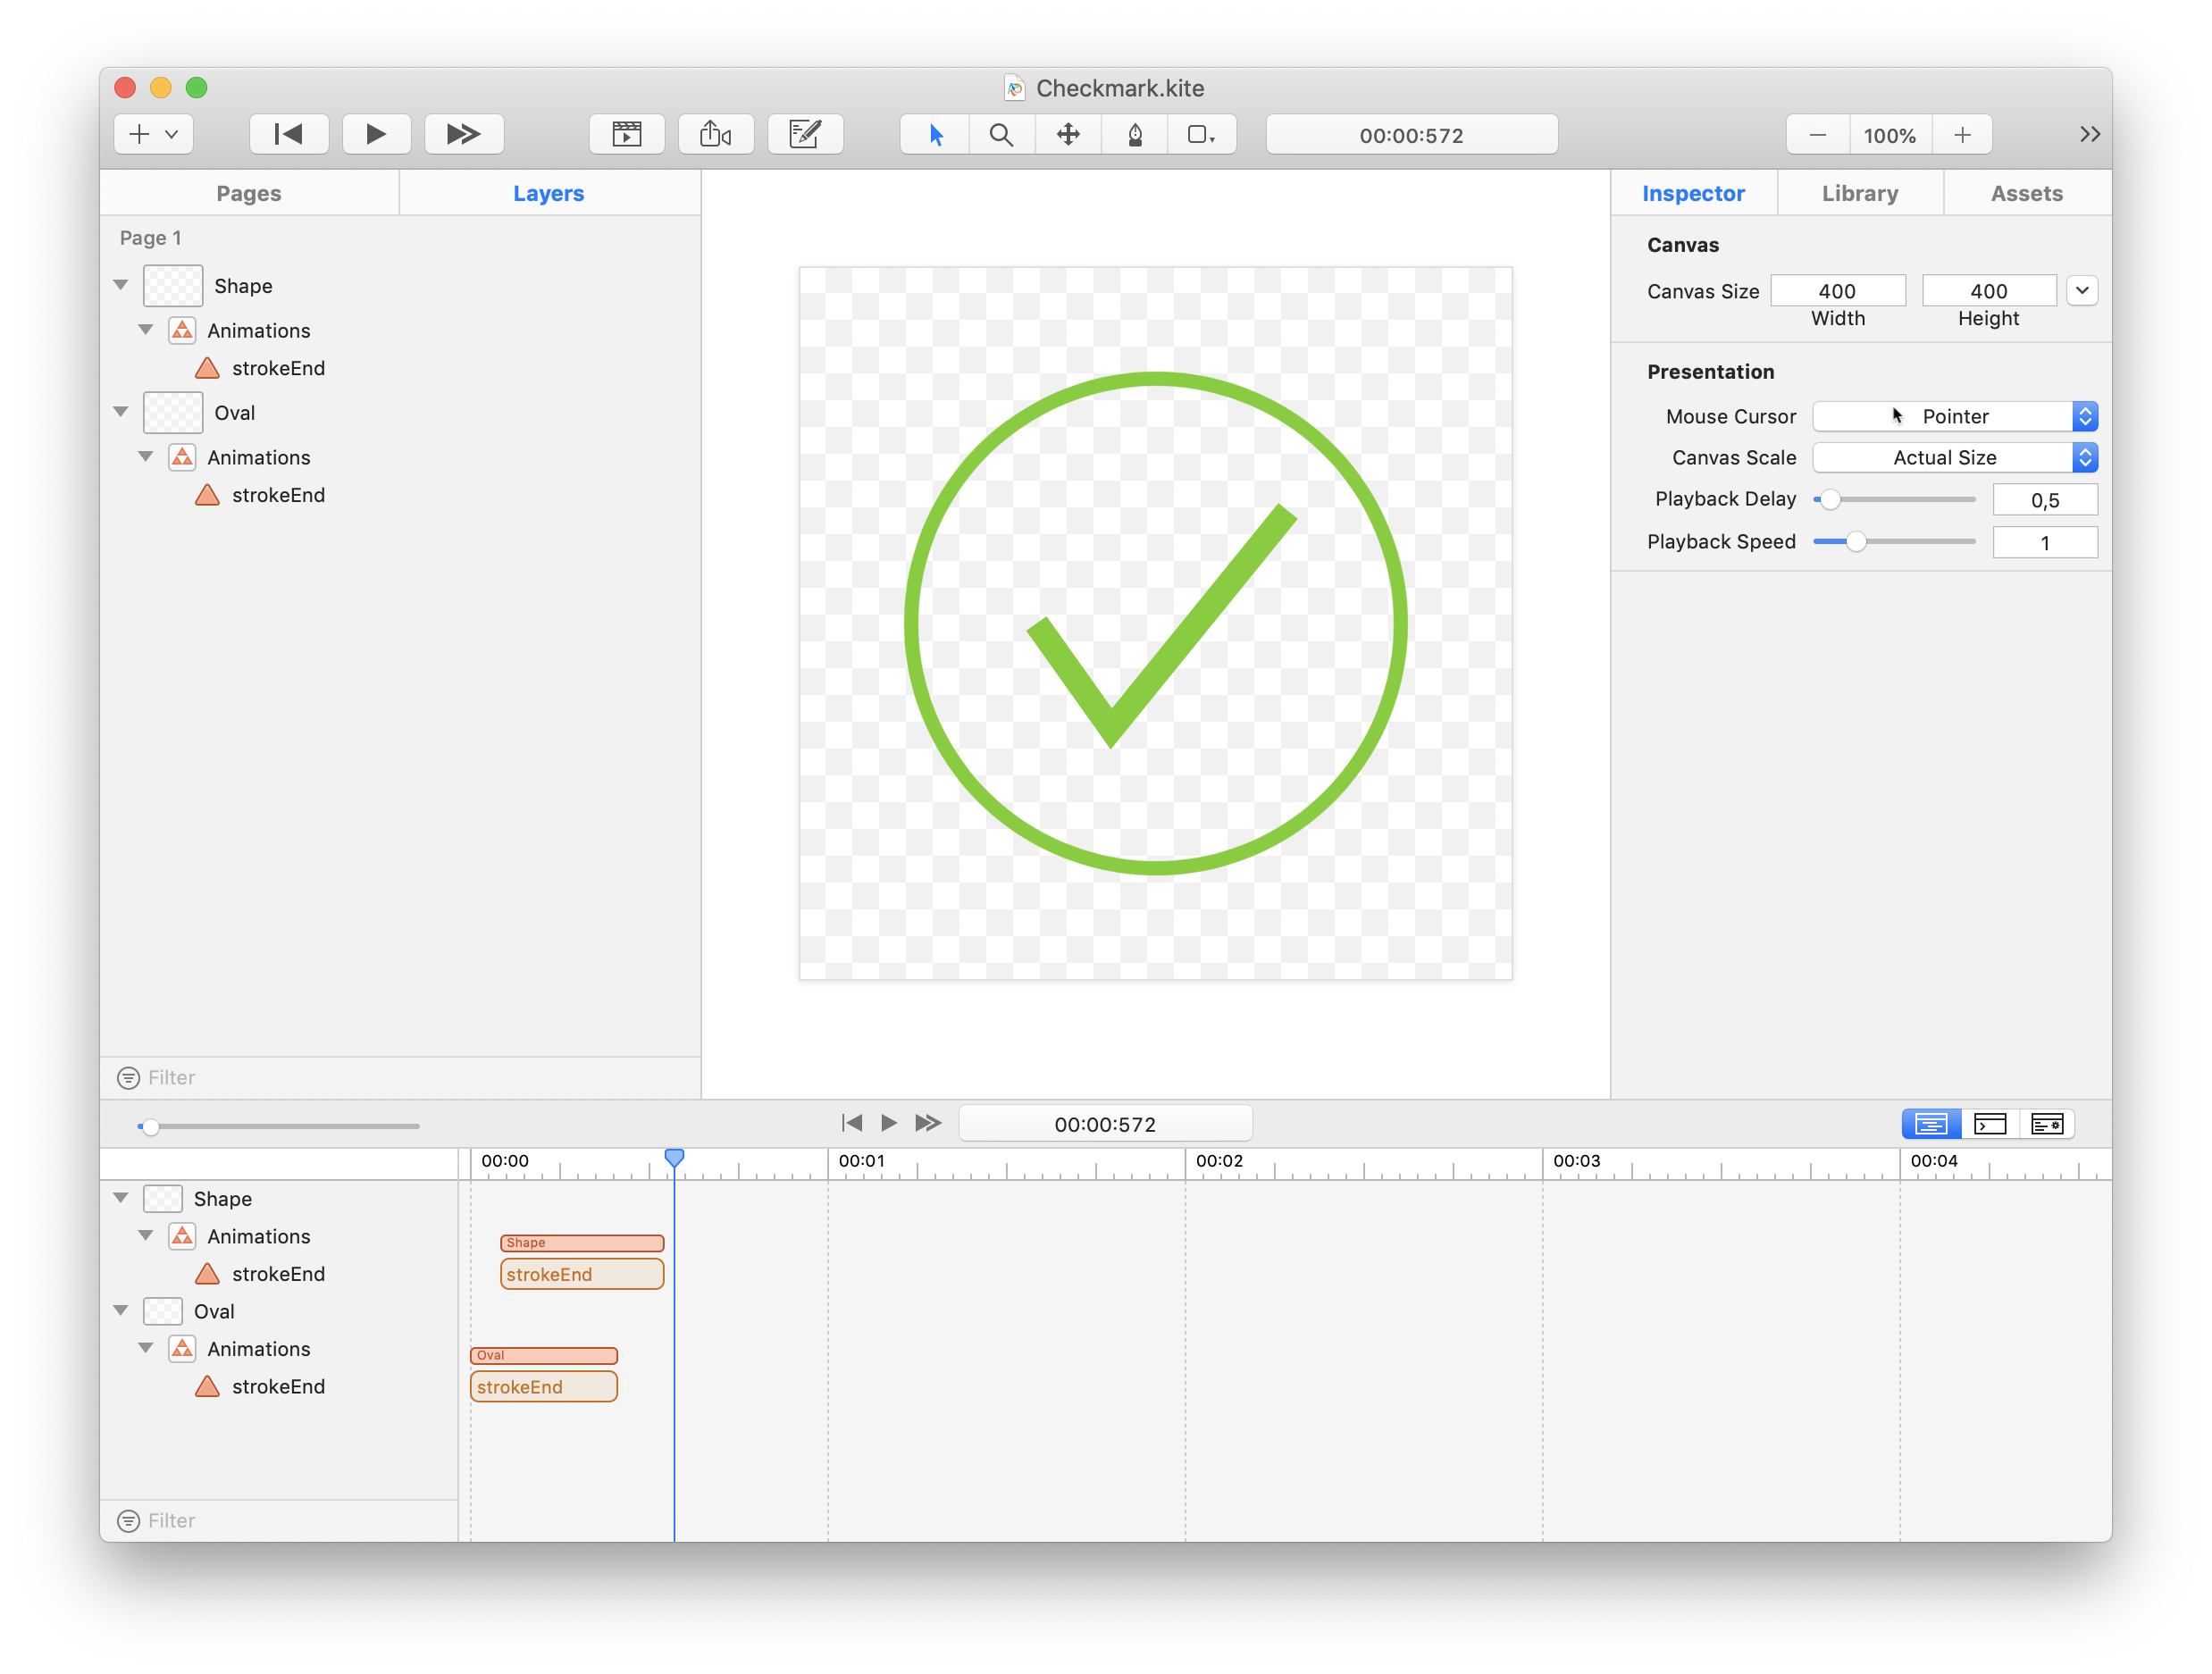 Animations are assets: using Core Animation archives on iOS